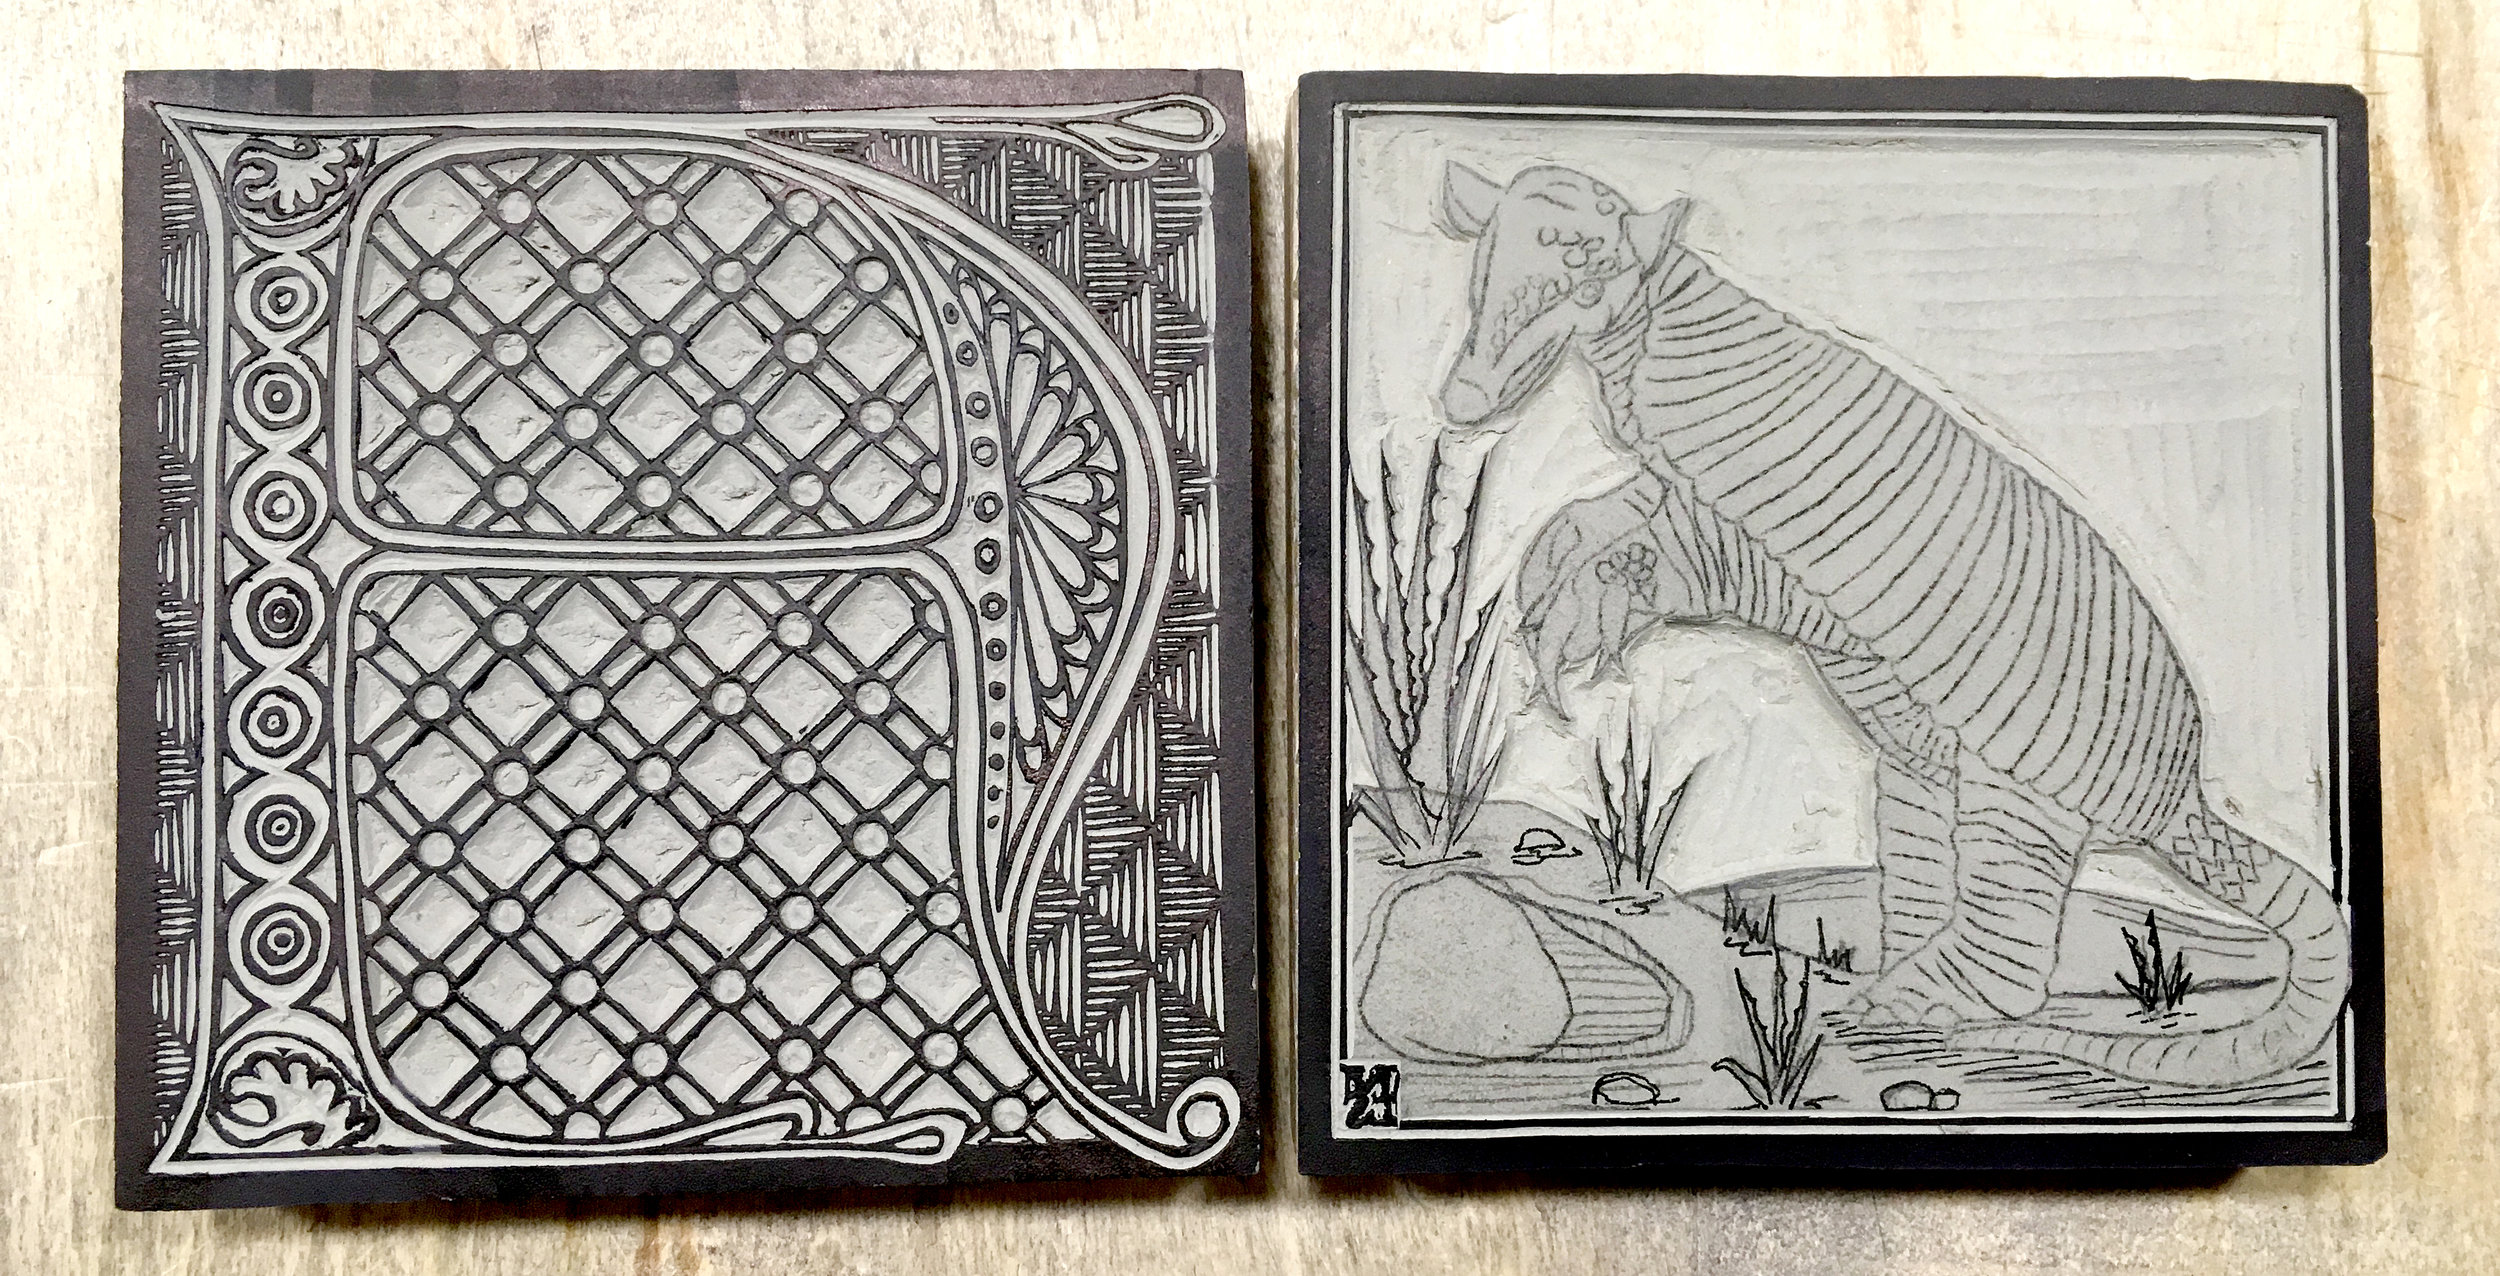 """My first 2 blocks for the Abecedarium/Bestiary, """"A"""" and """"Giant Armadillo."""" Prints of these two blocks will be available this weekend!"""